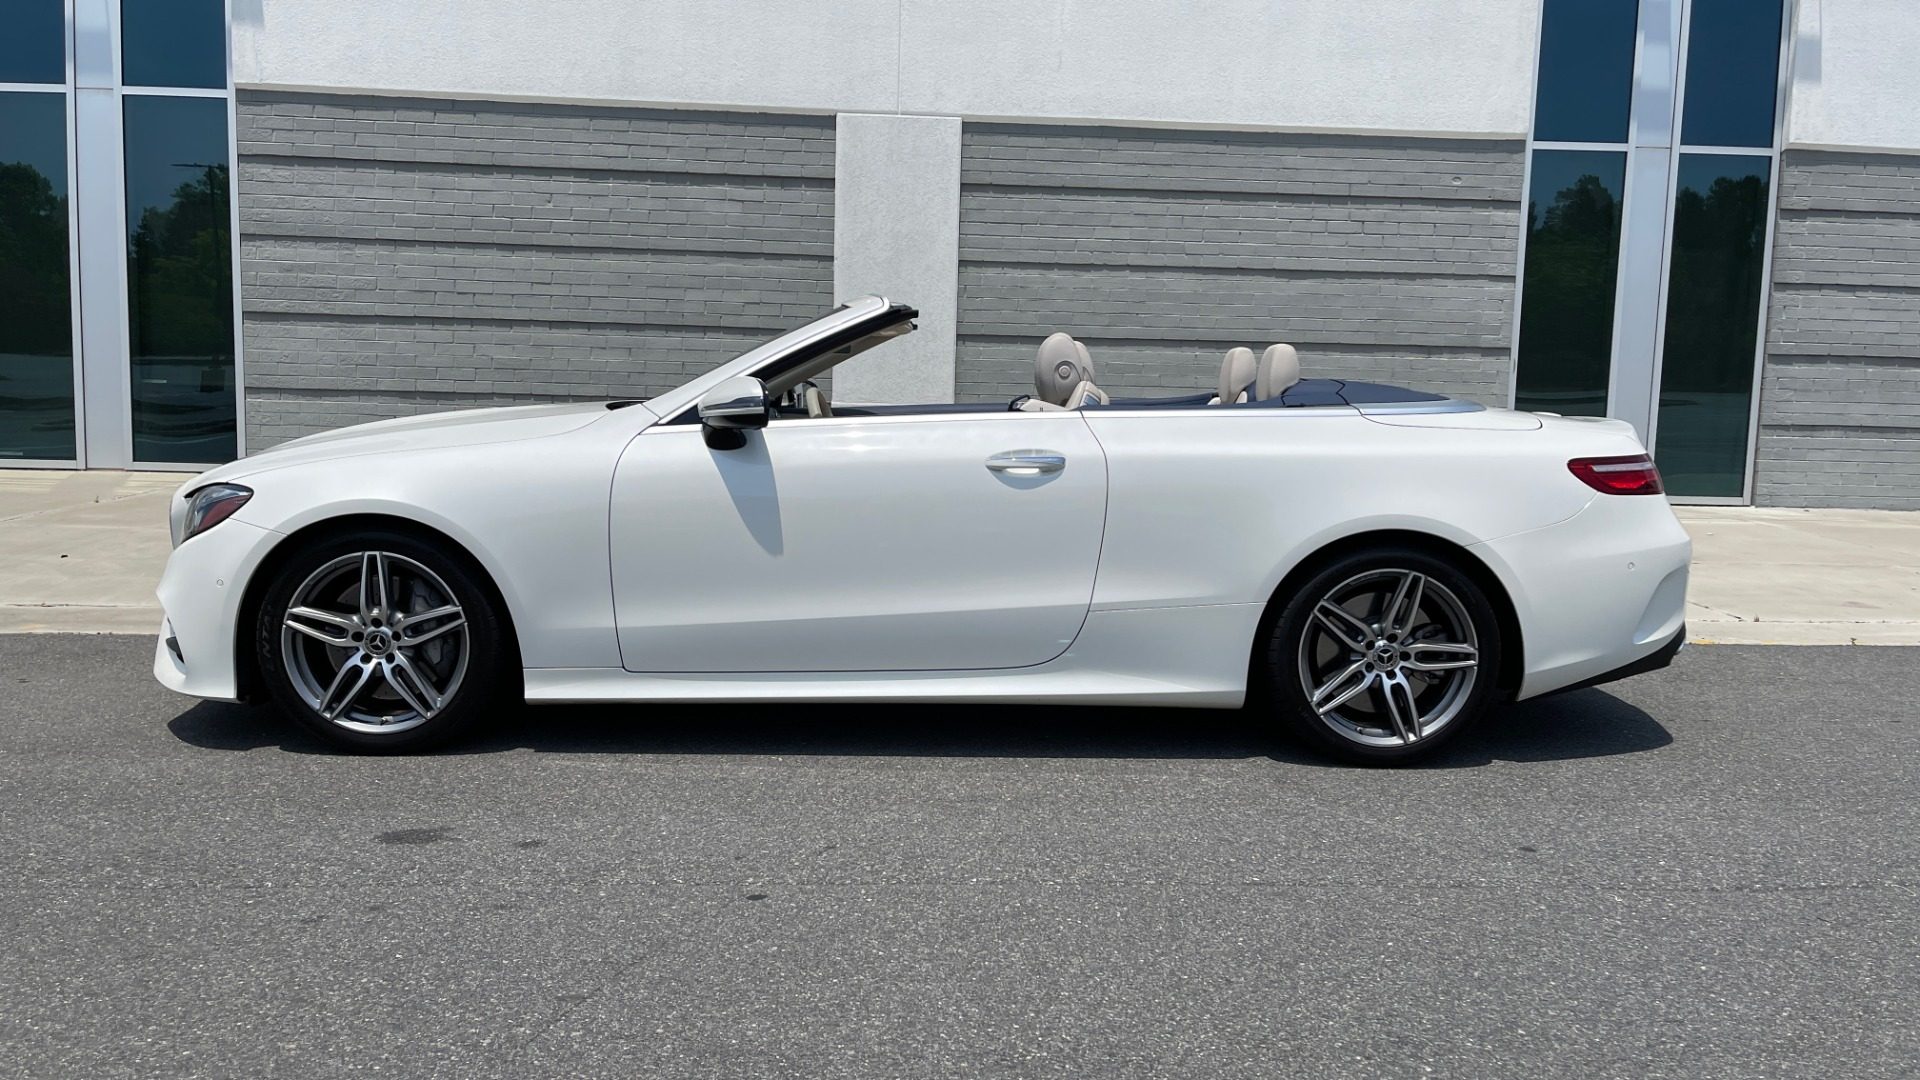 Used 2018 Mercedes-Benz E-CLASS E 400 CABRIOLET / PREM PKG / AMG LINE / NAV / REARVIEW for sale Sold at Formula Imports in Charlotte NC 28227 2